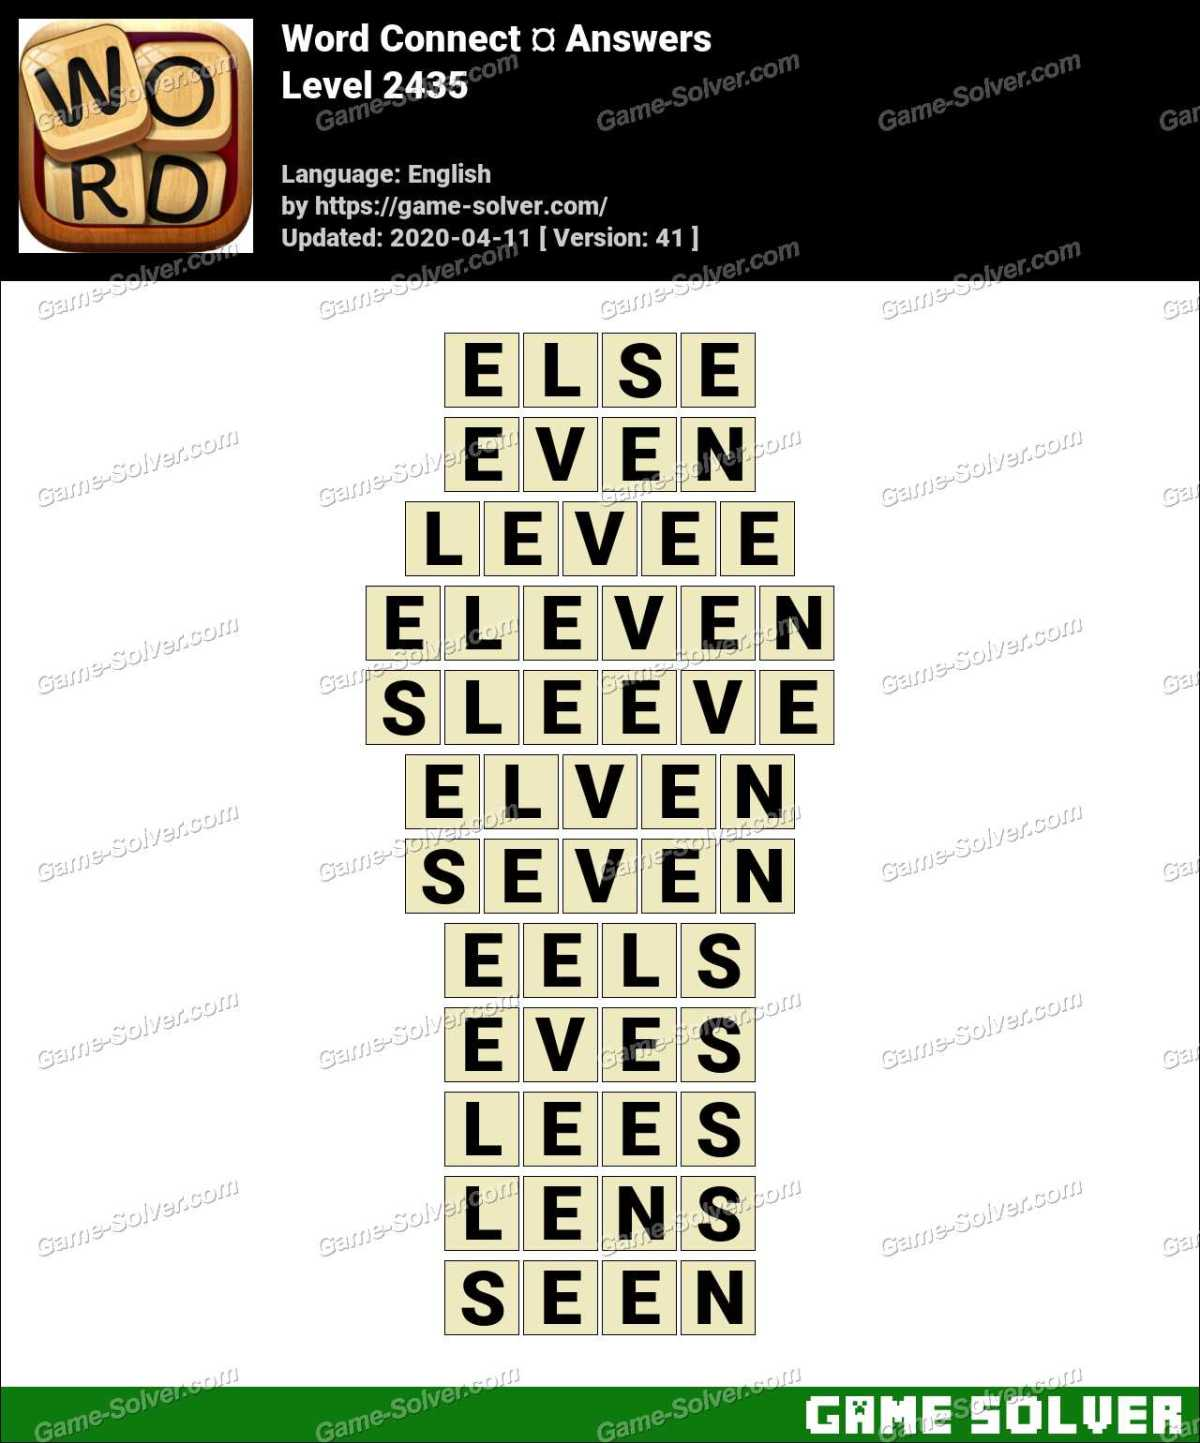 Word Connect Level 2435 Answers